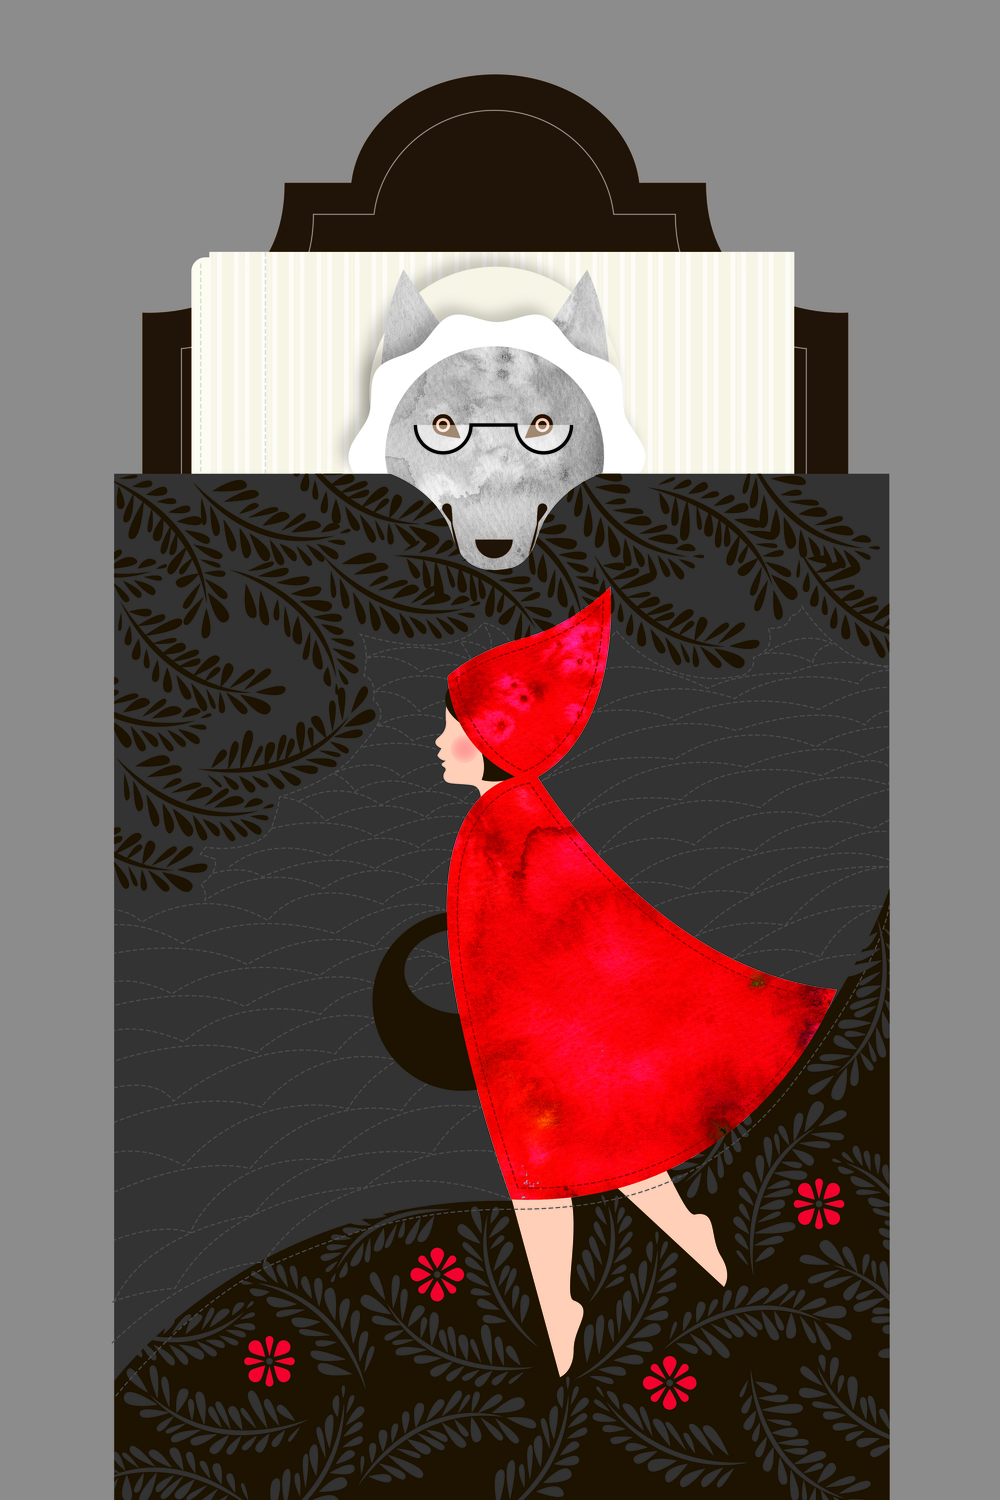 Bedtime Stories: Little Red Riding Hood